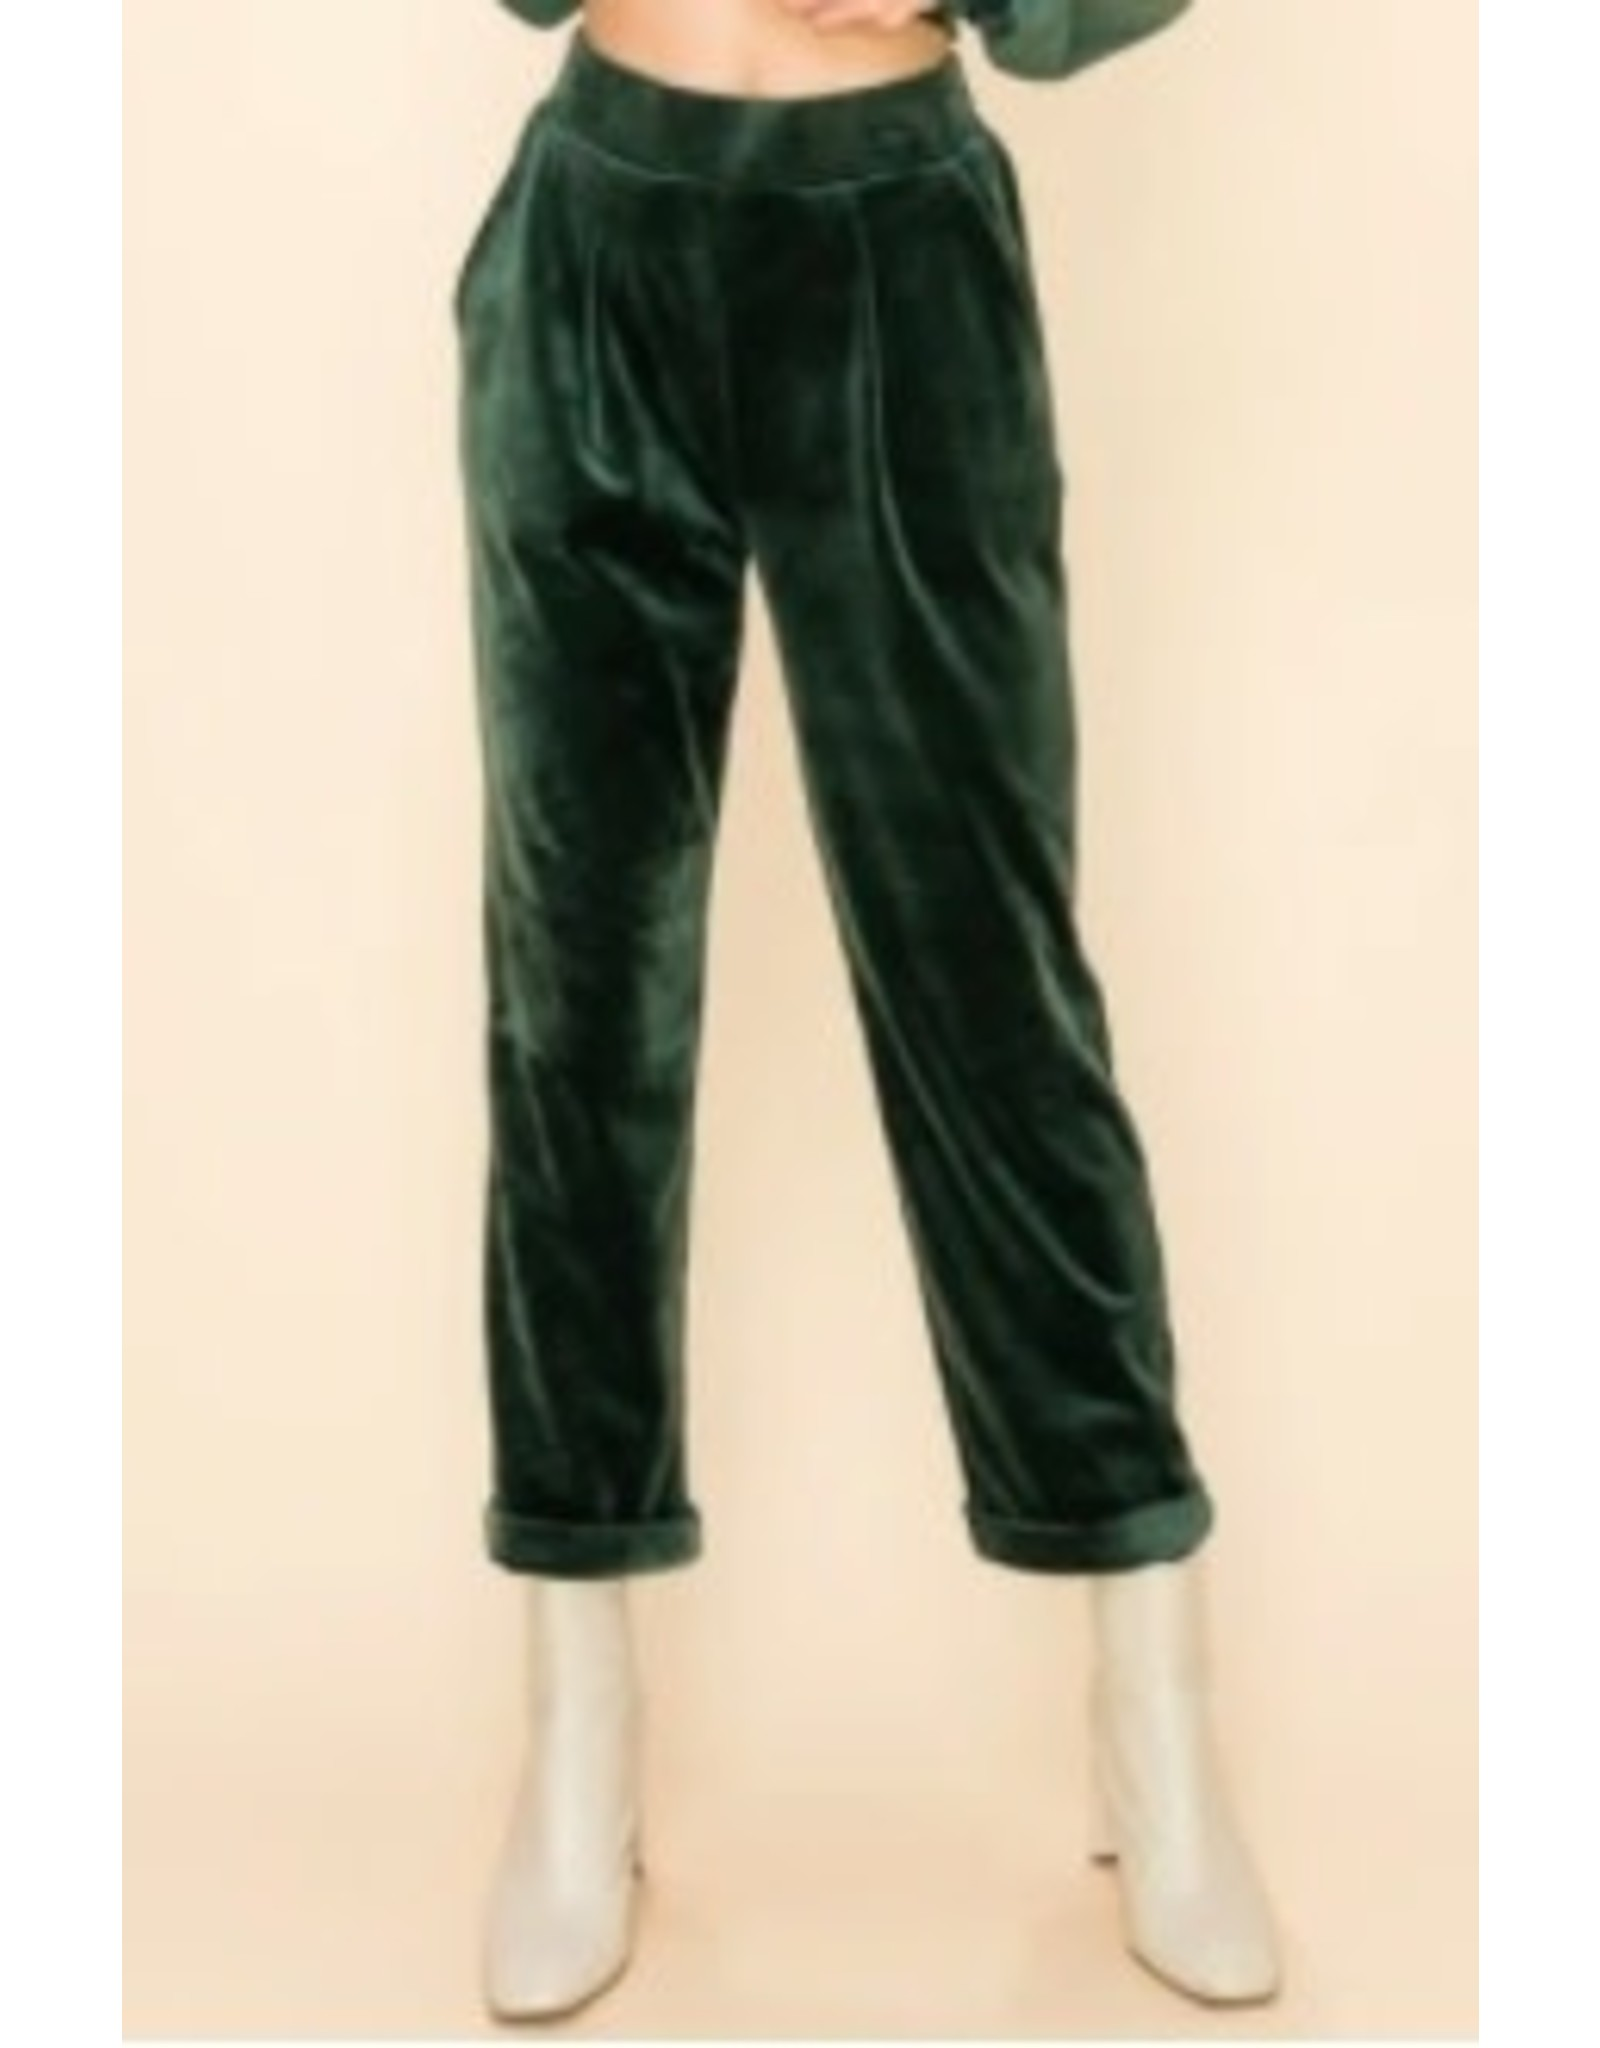 Bonanza - Dance Floor Pant High Waist